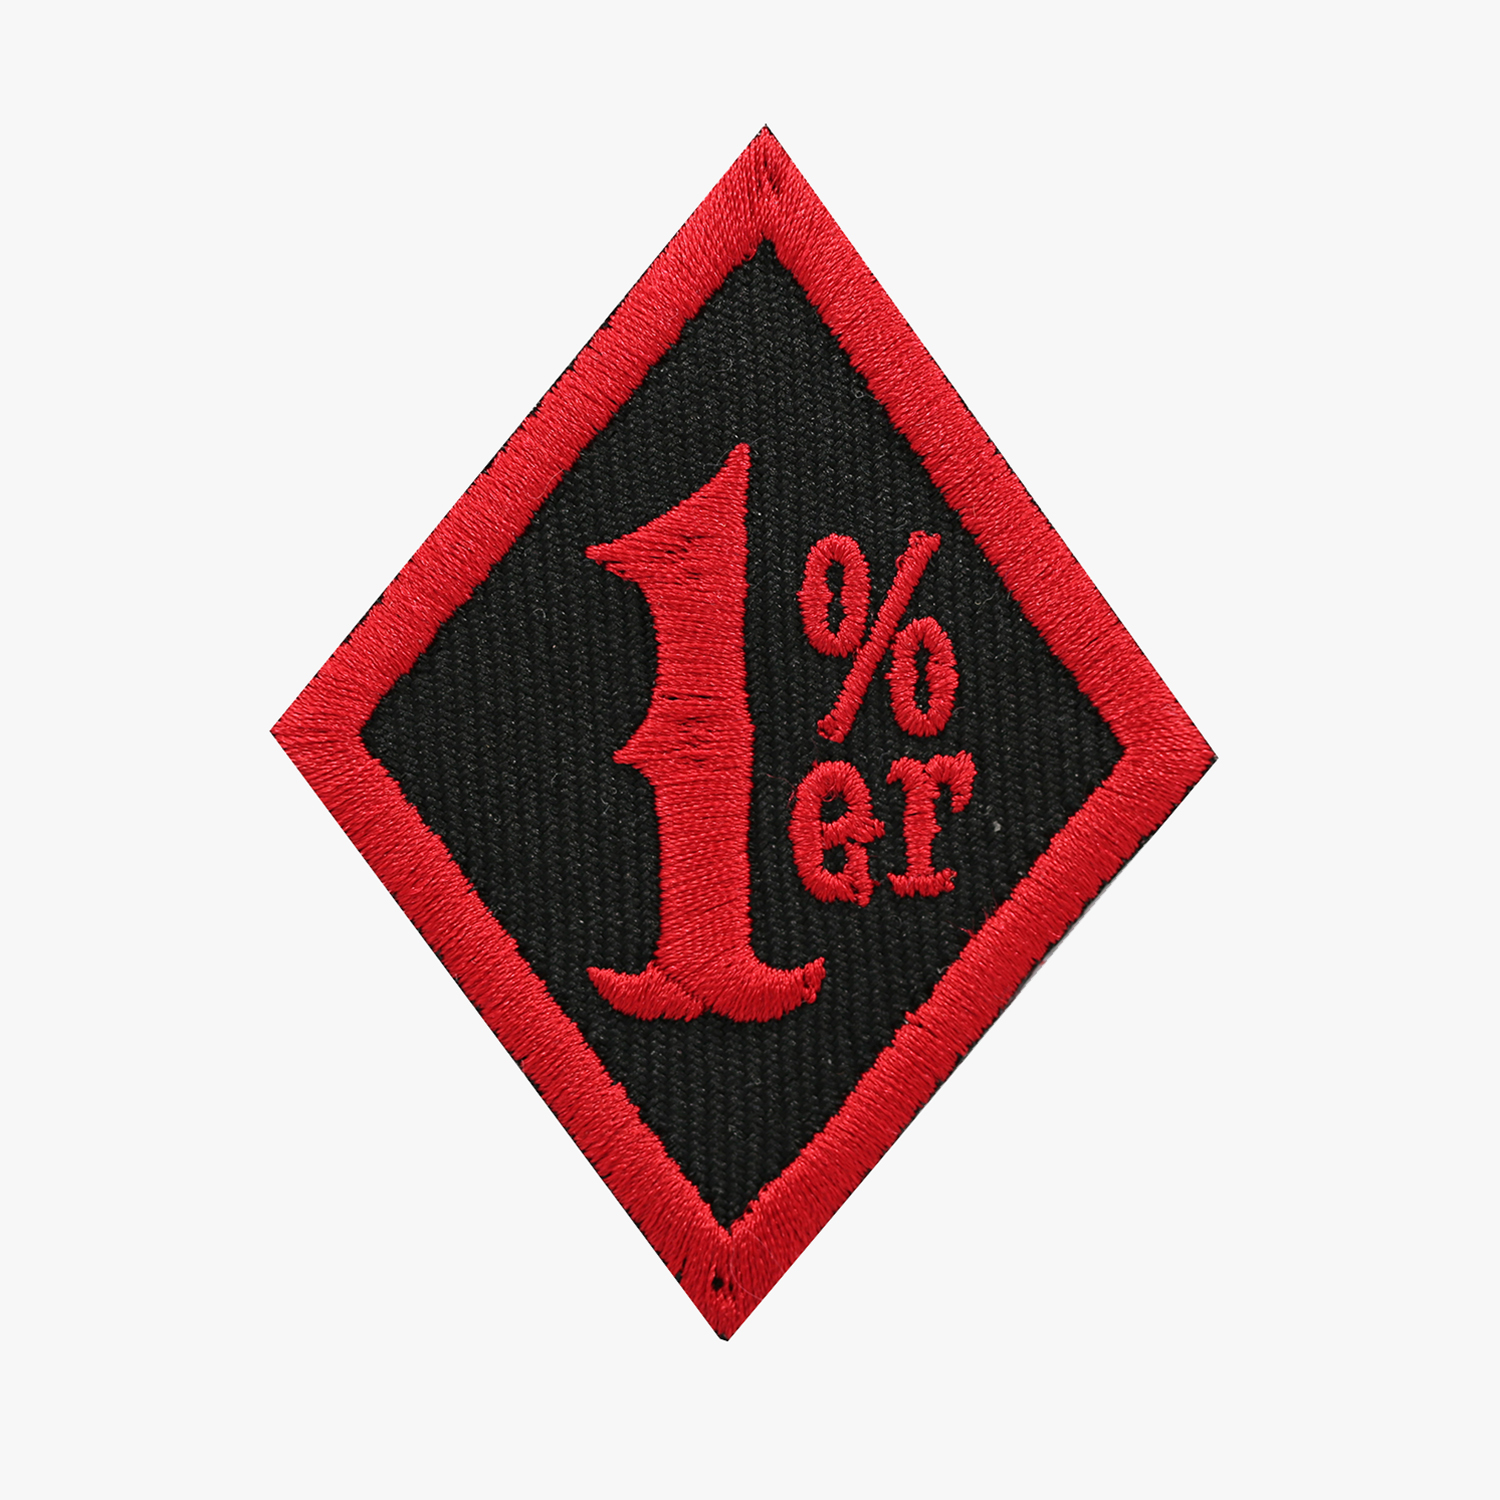 ONE PERCENT DIAMOND BIKER MC PATCH